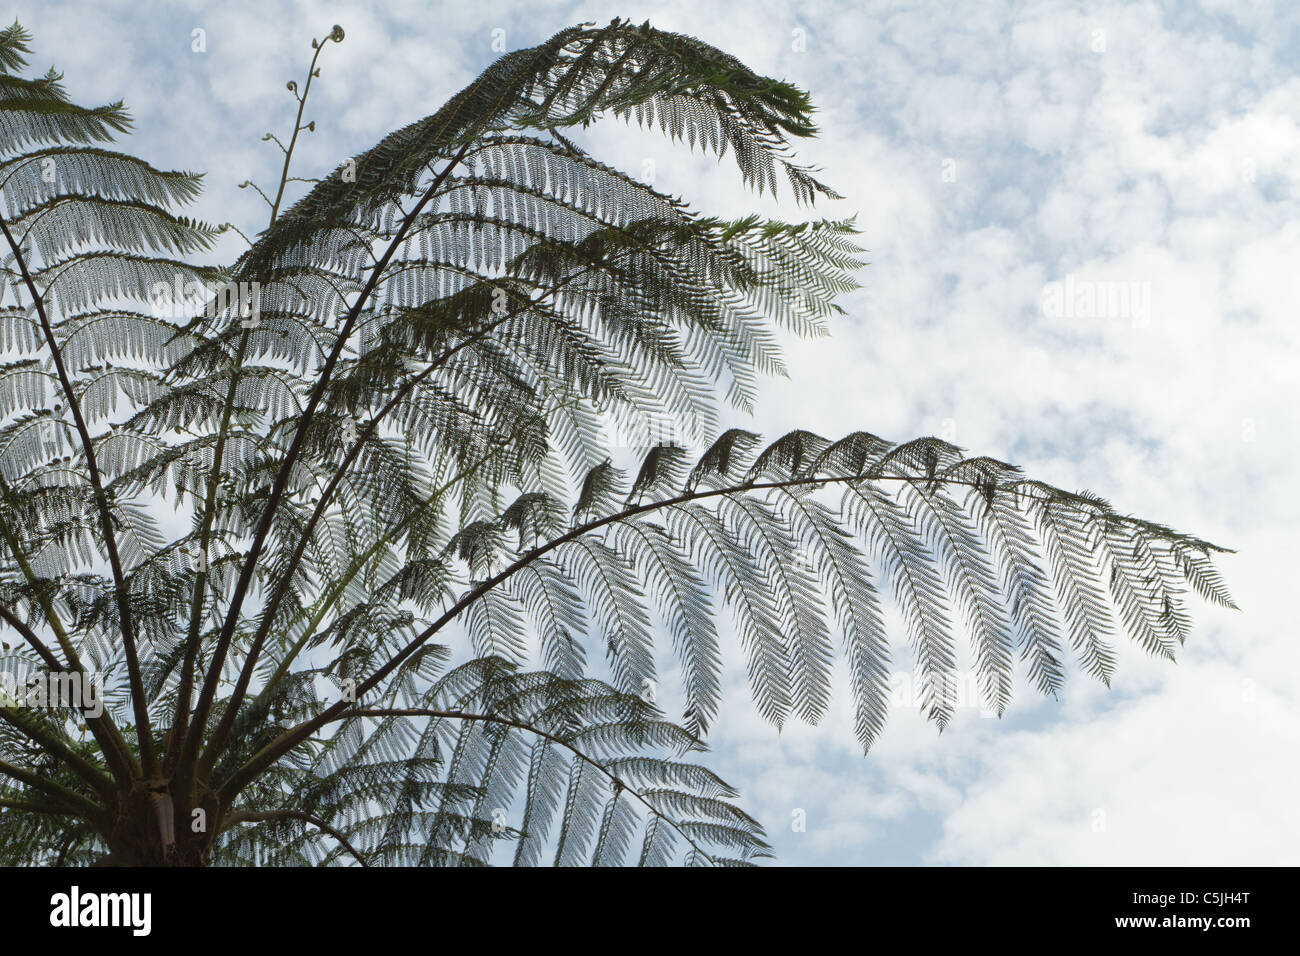 tropical tree fern silhouette under cloudy sky, kaeng krachan national park, Thailand - Stock Image